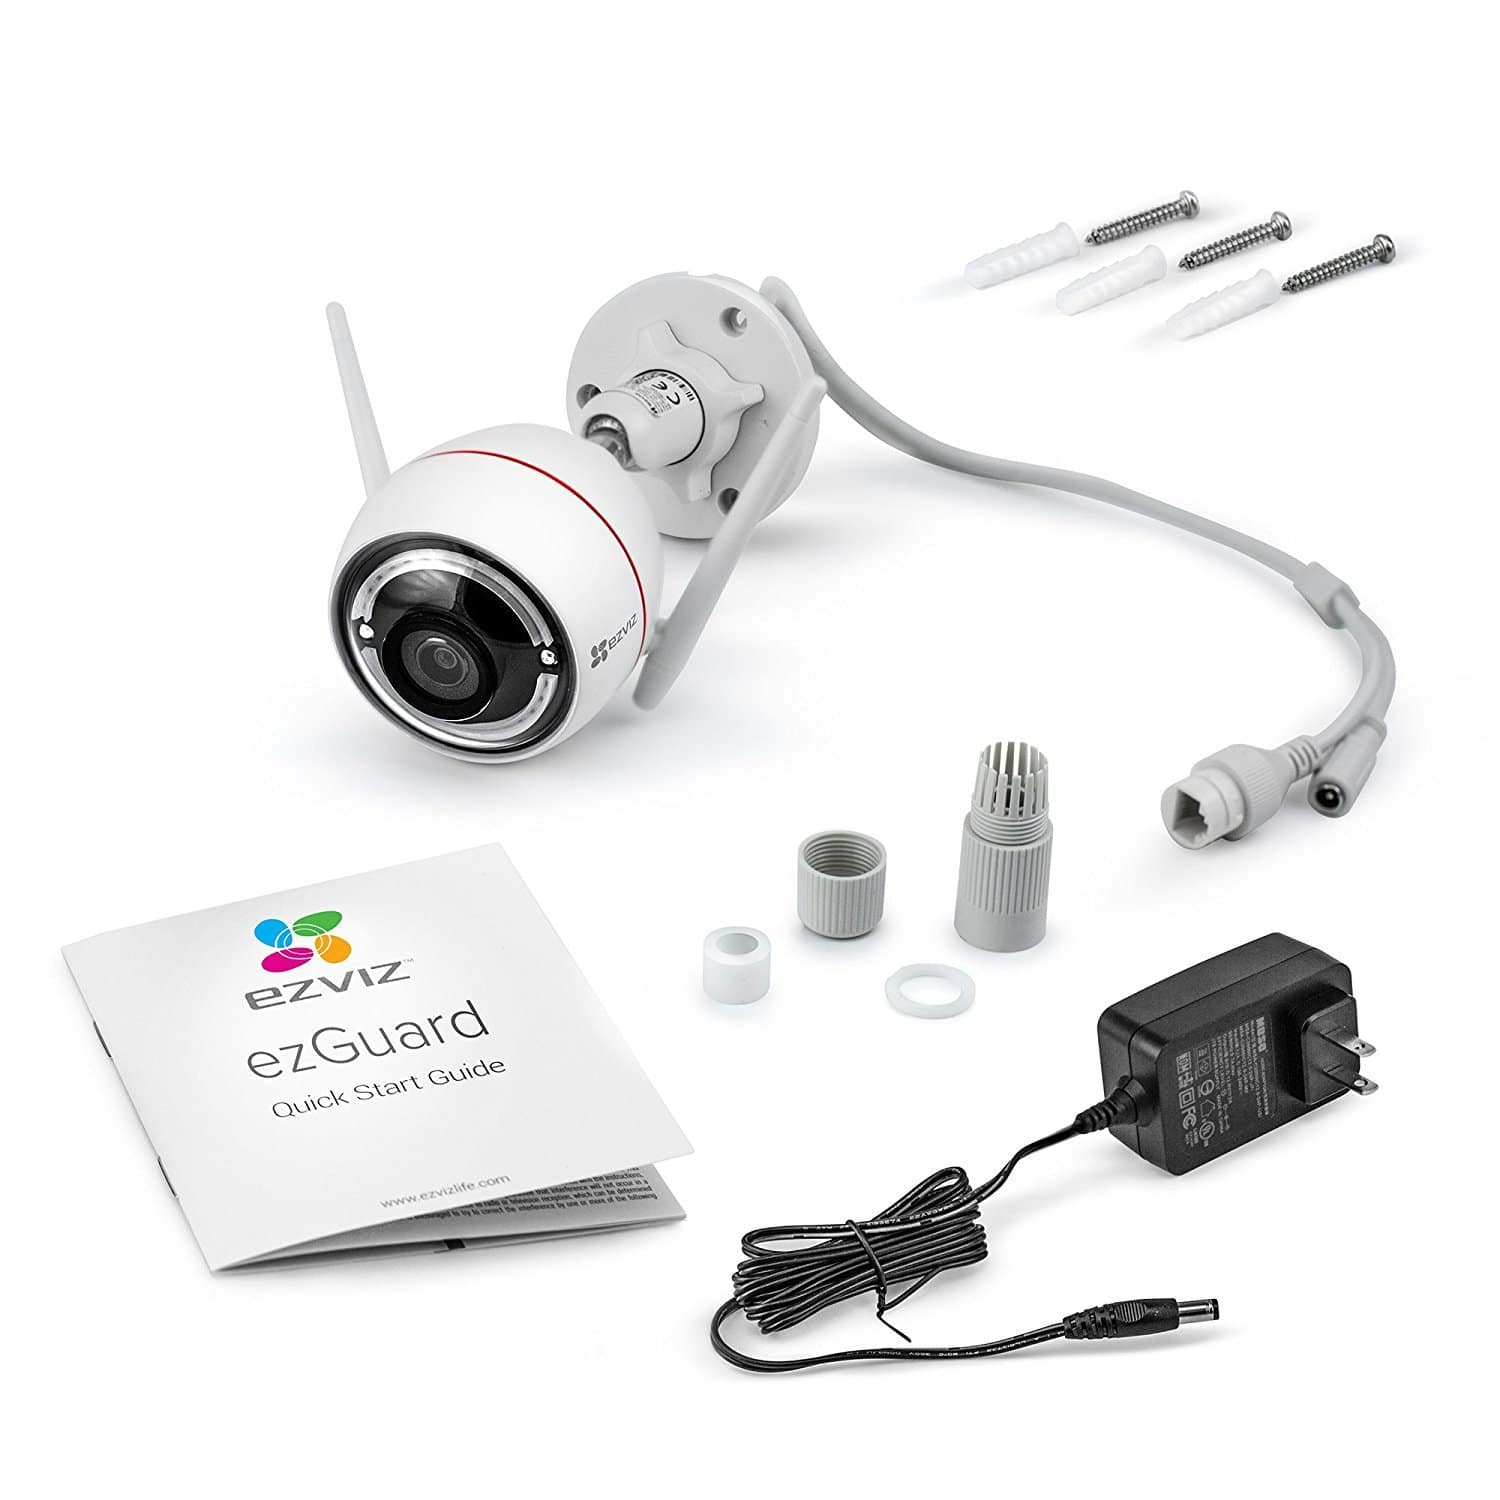 EZVIZ C3W / ezGuard 1080p - Wireless Wi-Fi Security Camera with Remote Activated Alarm System and Pre-Installed 16GB microSD Card [16GB mSD Included] $61.08